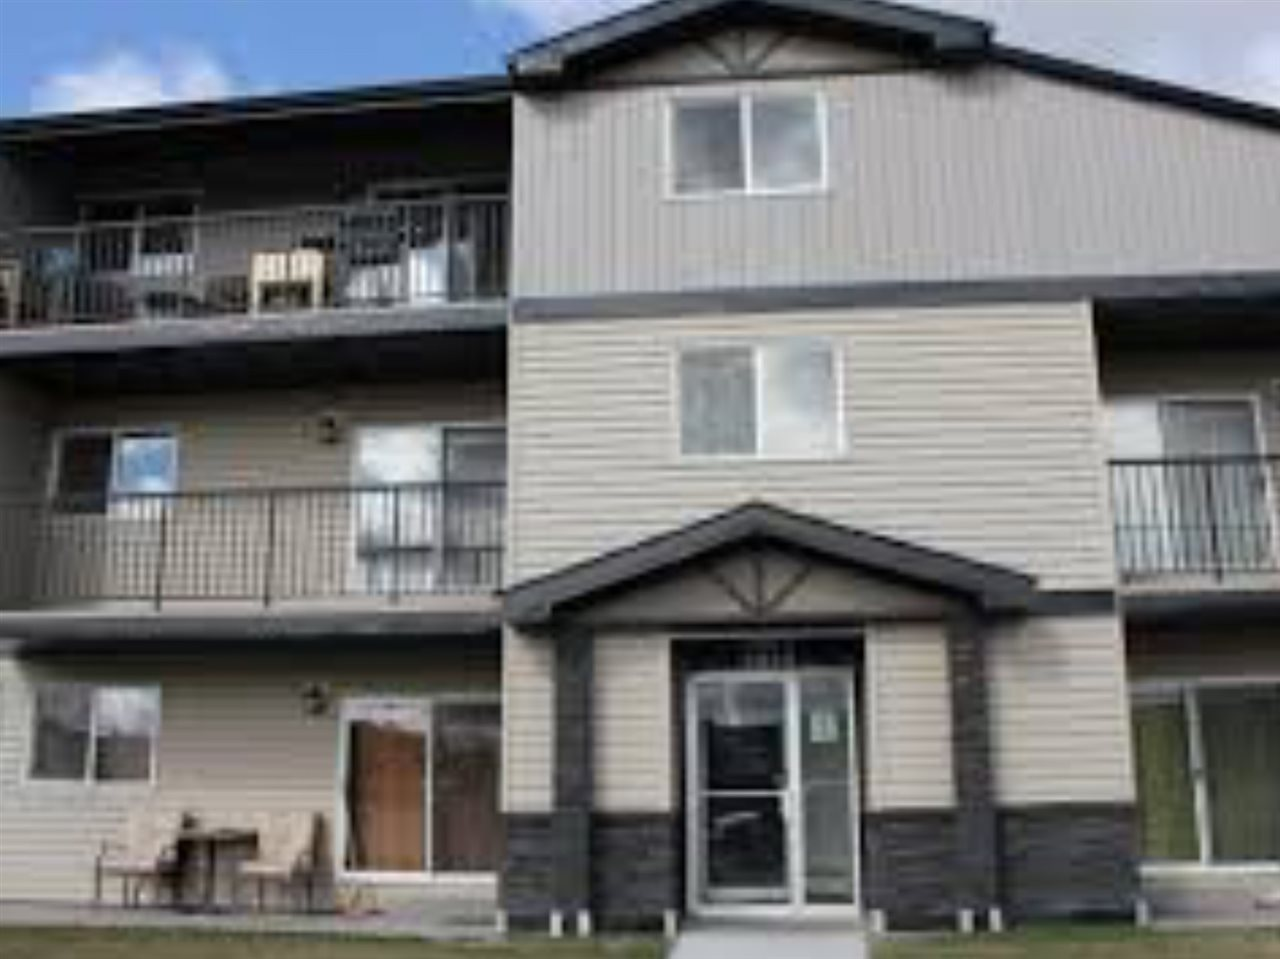 AFFORDABILITY PLUS!! The fees are SUPER LOW when you factor in Heat and Water included! The complex is located in Blue Quill, a desirable and safe part of town that is walkable with shopping, walking trails, LRT and more! This unit has a number of recent upgrades including cabinets, flooring and bathroom.